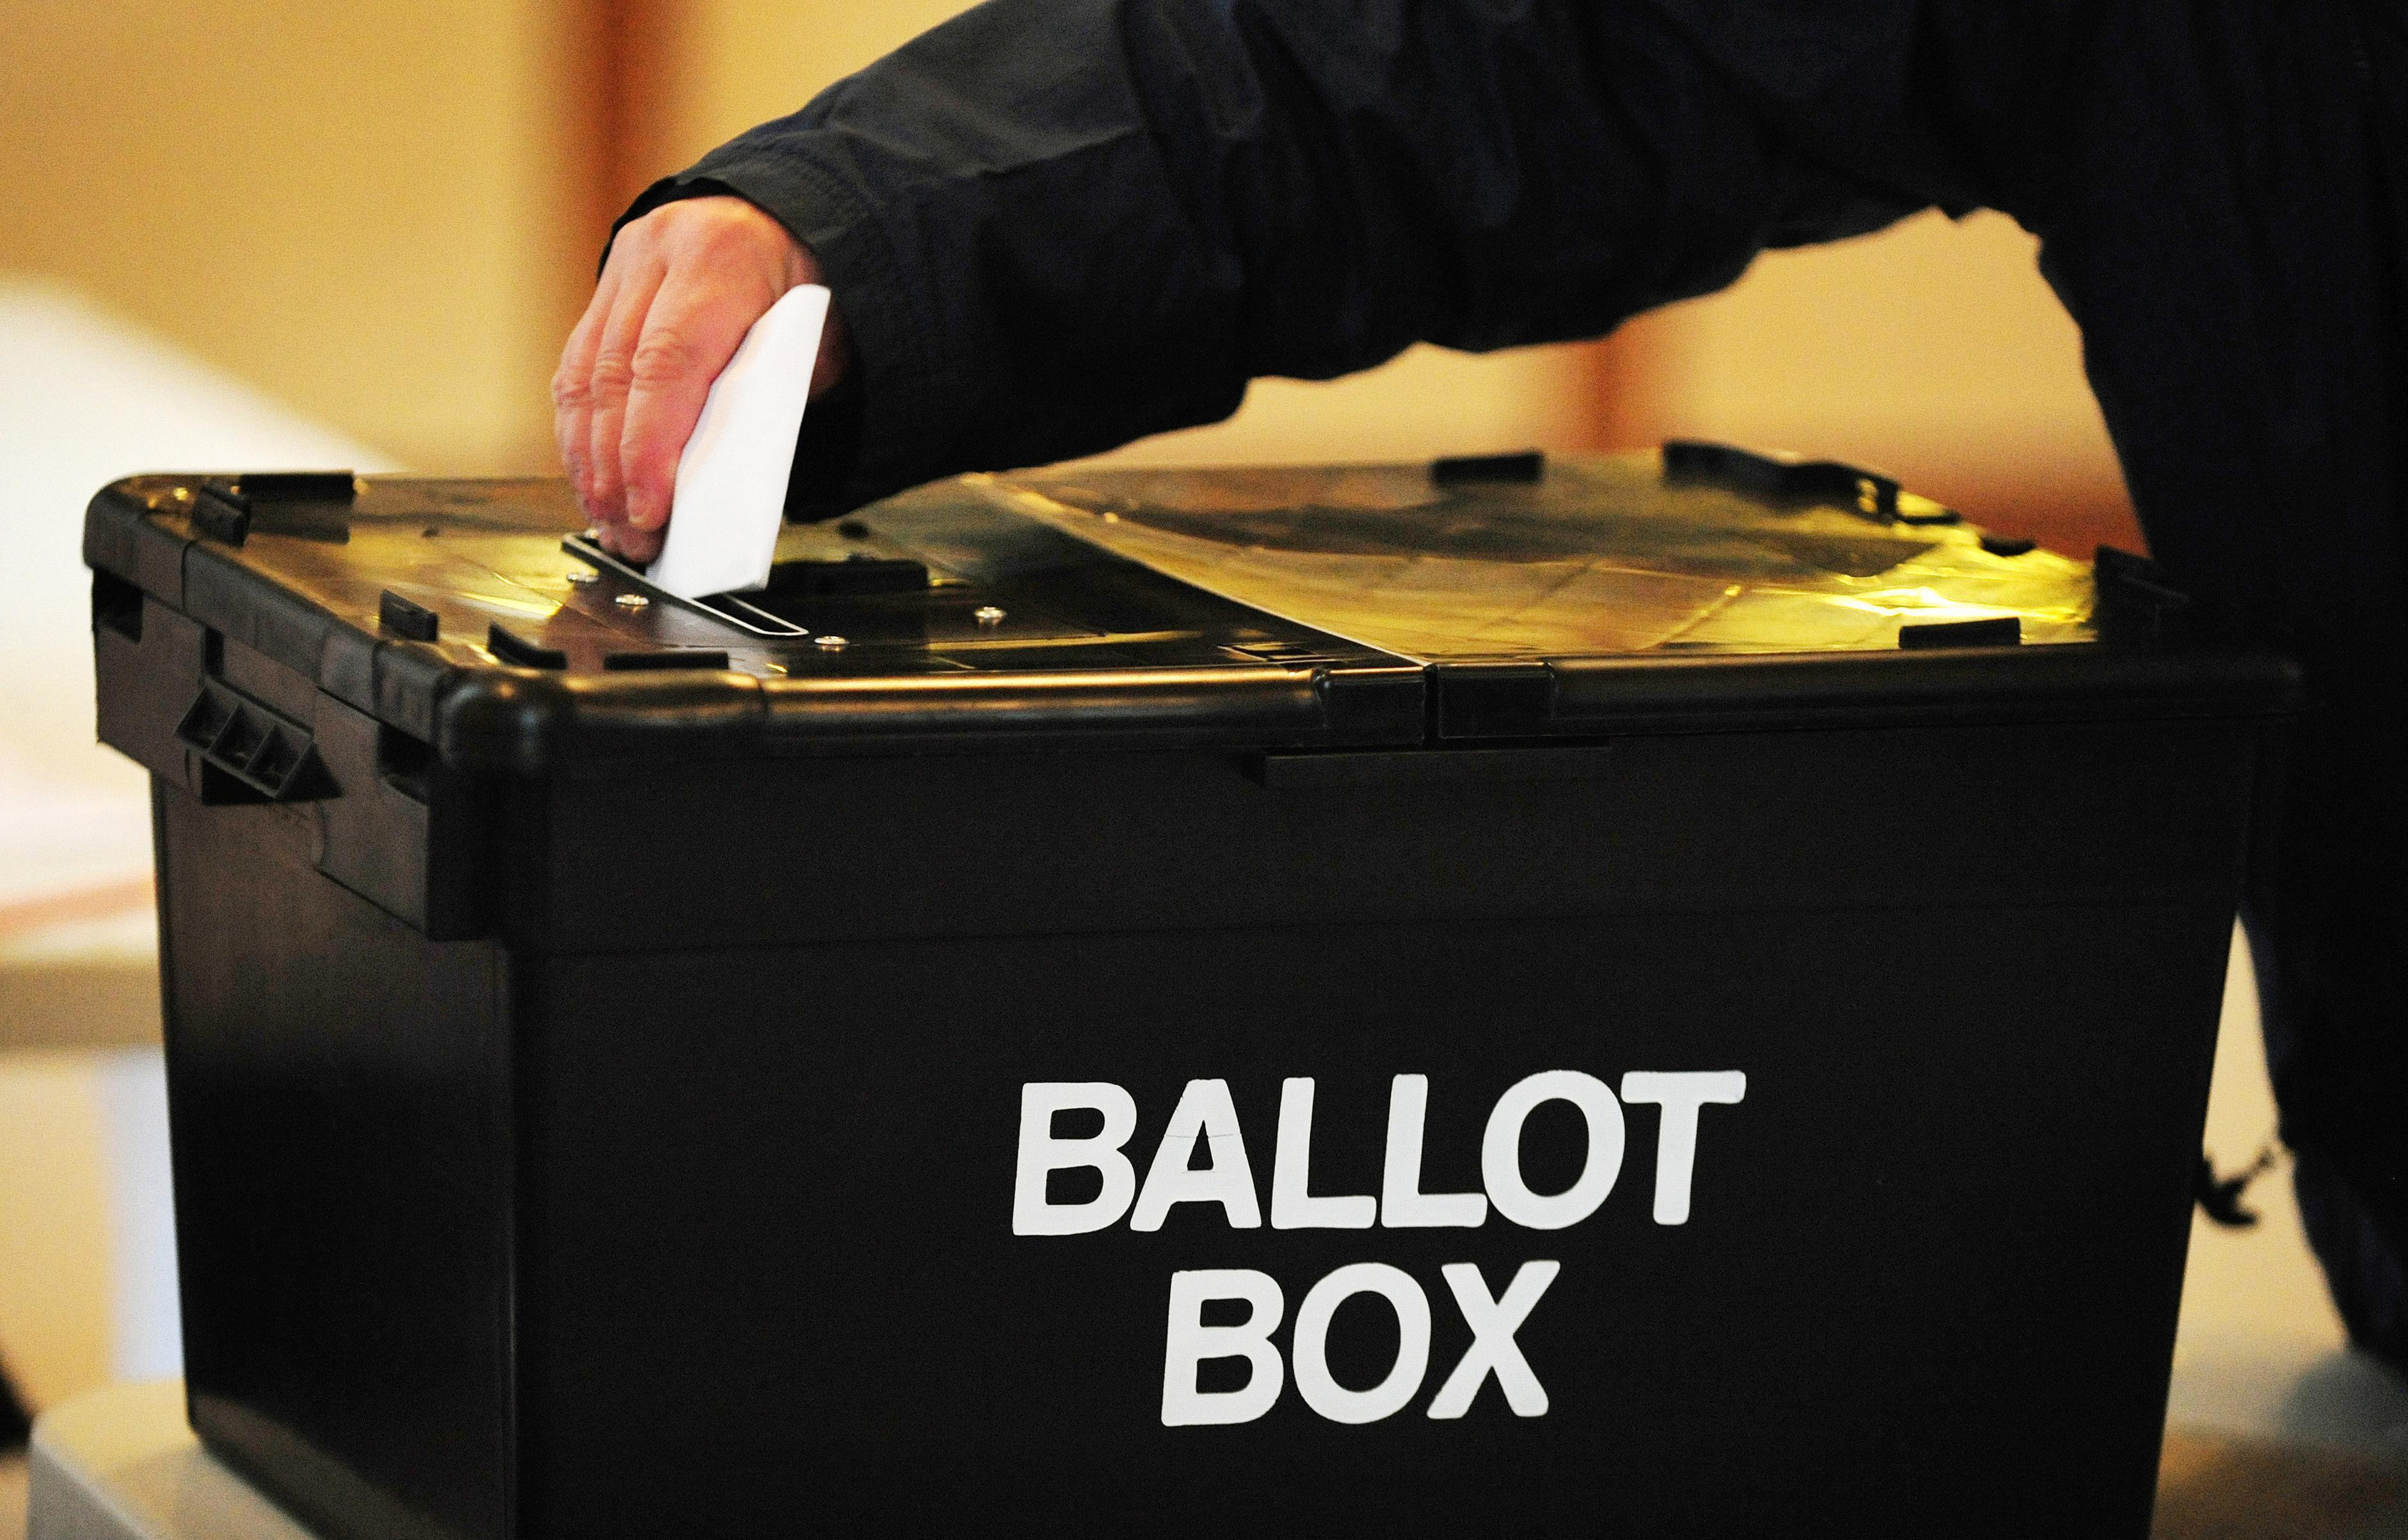 The Taxpayers' Alliance has raised fears over how much public cash is being handed to returning officers.